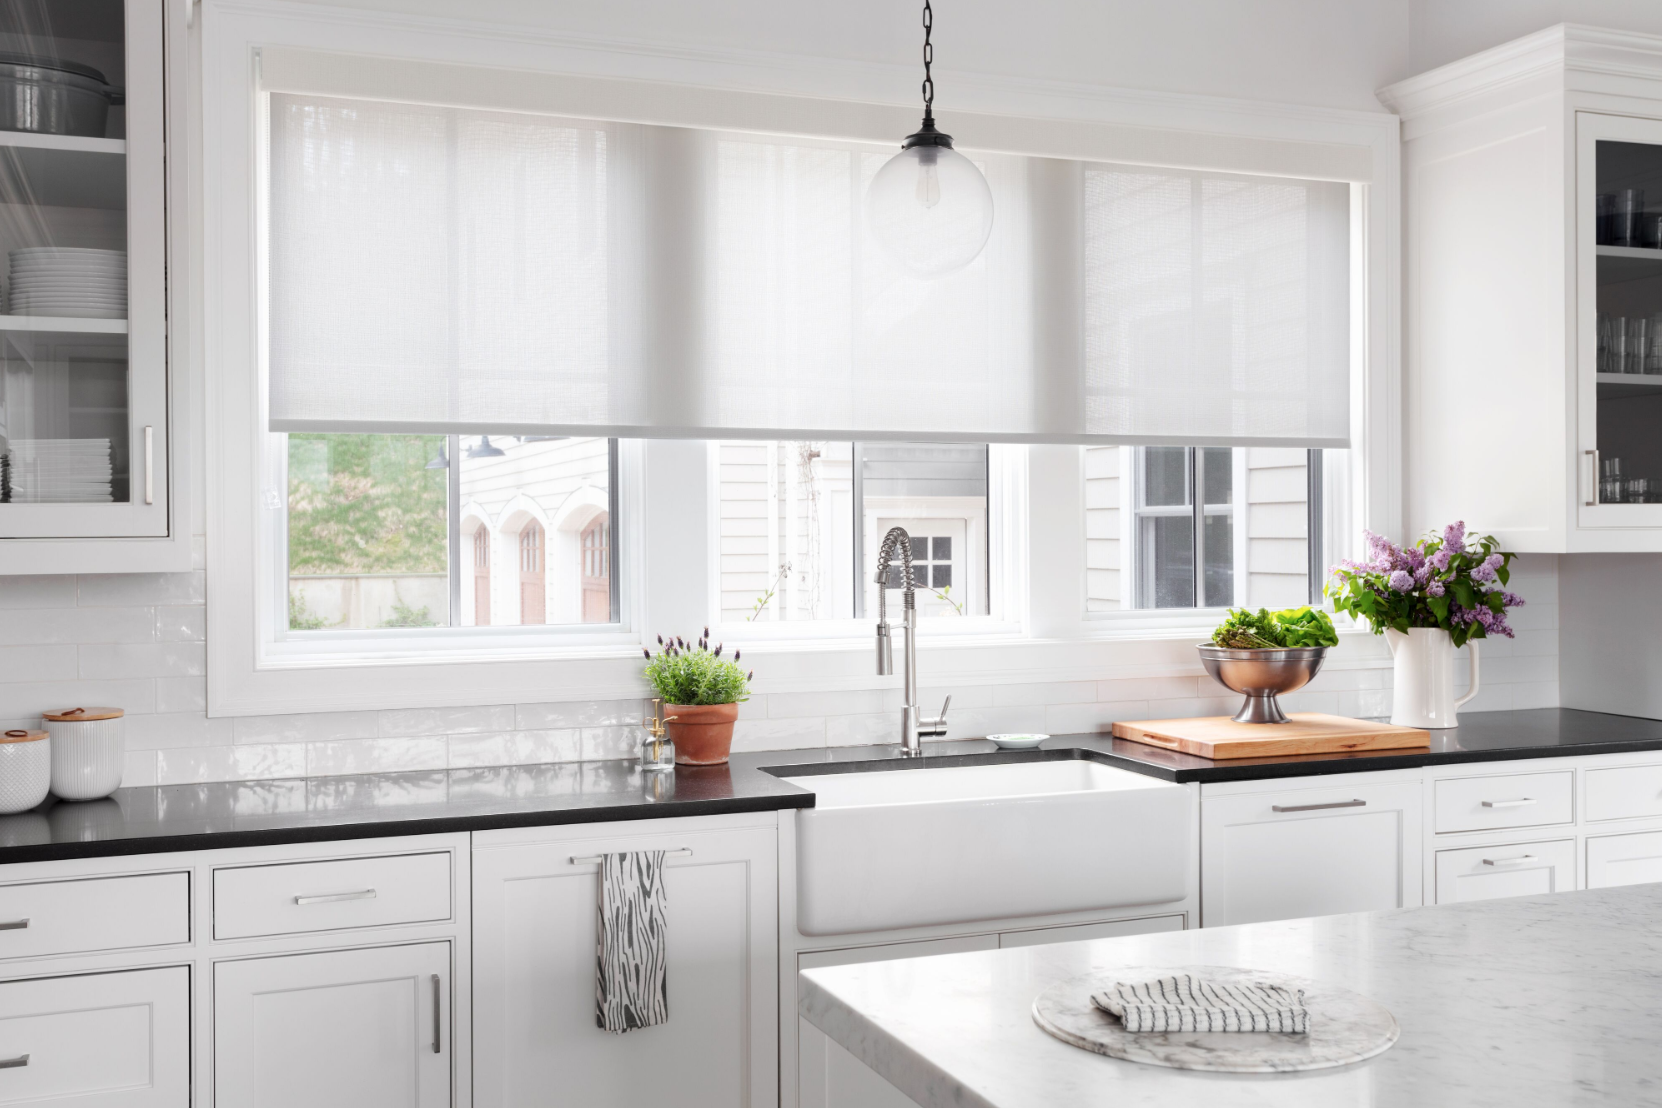 A recent Blinds To Go shoot in a beautiful home! Photographer Rick Lew